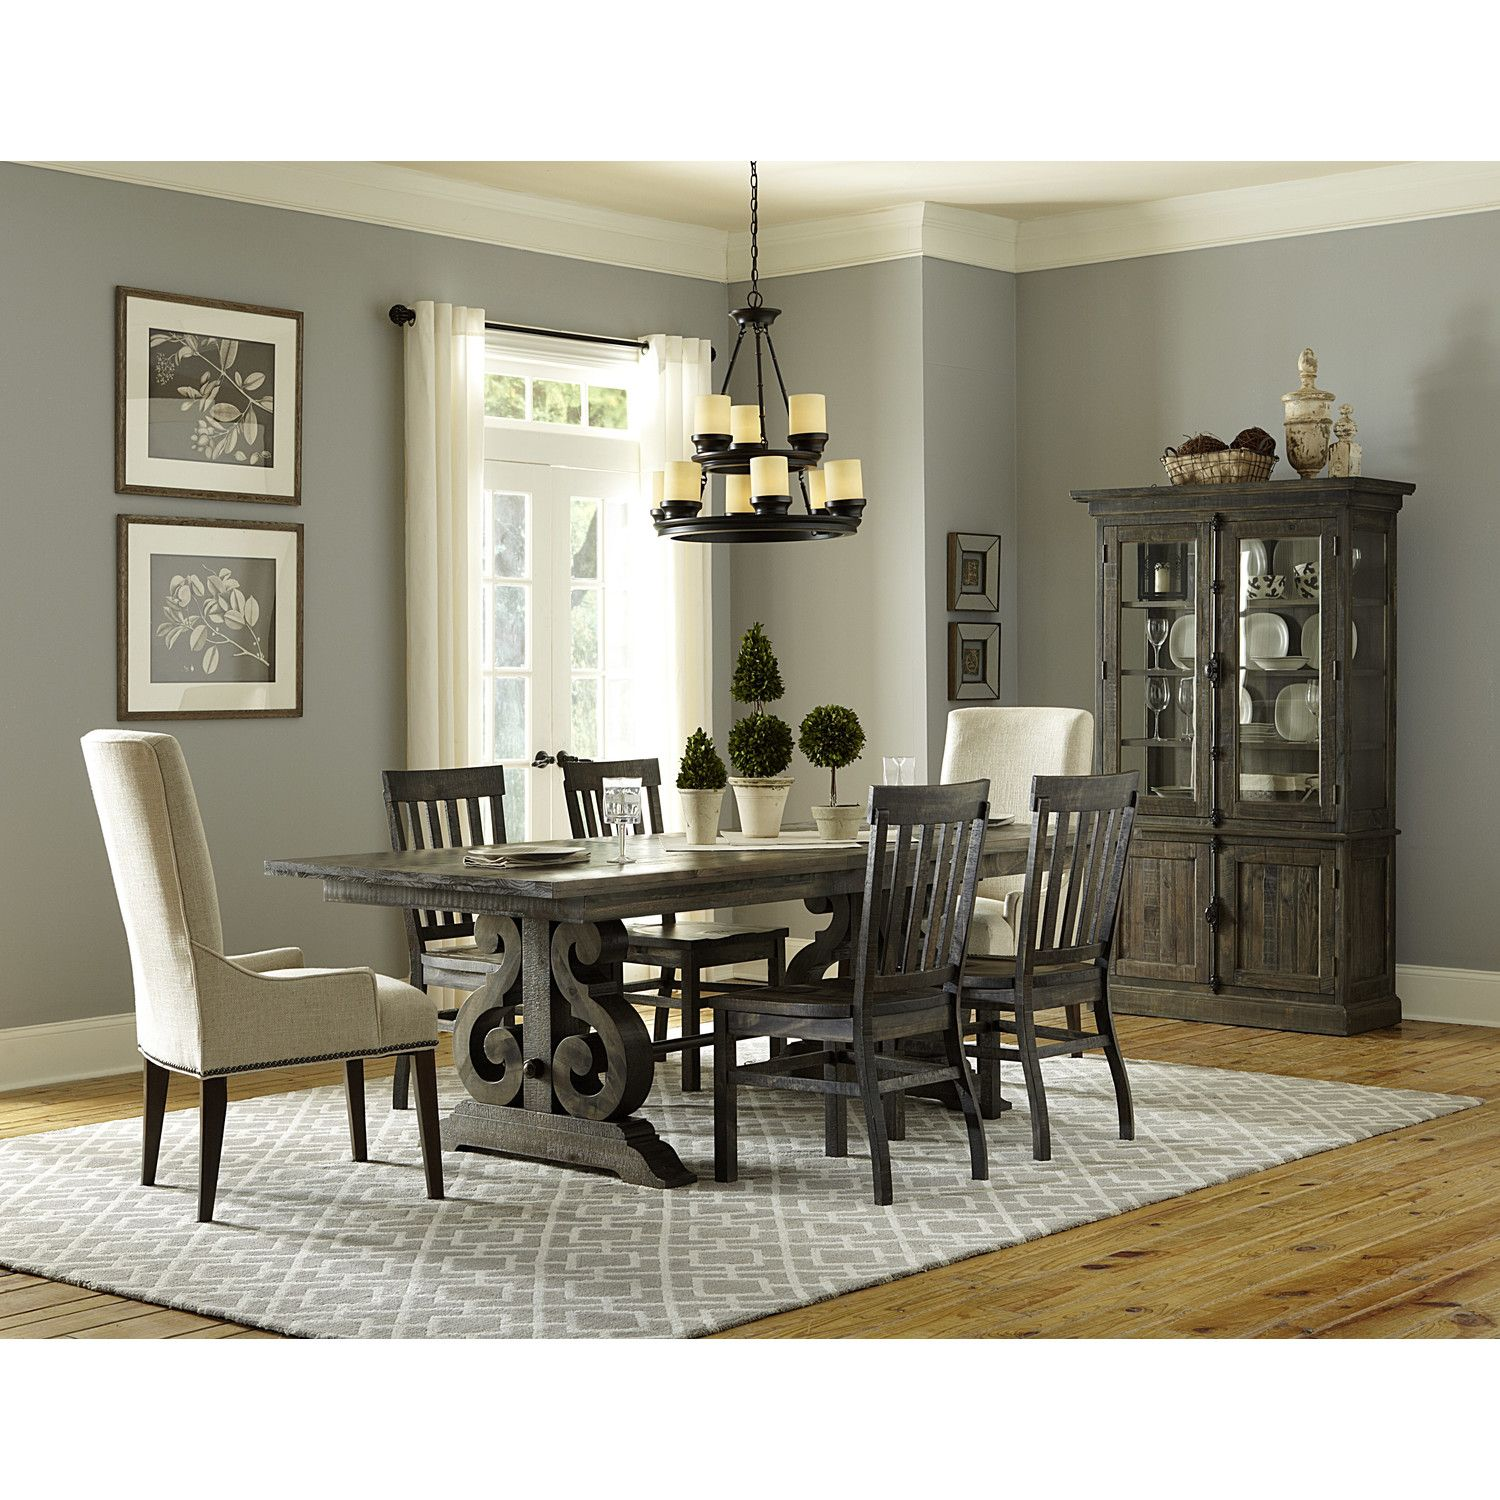 Magnussen Bellamy Dining Table Reviews Dining Table In Kitchen Dining Room Sets Modern Dining Table Magnussen bellamy dining table